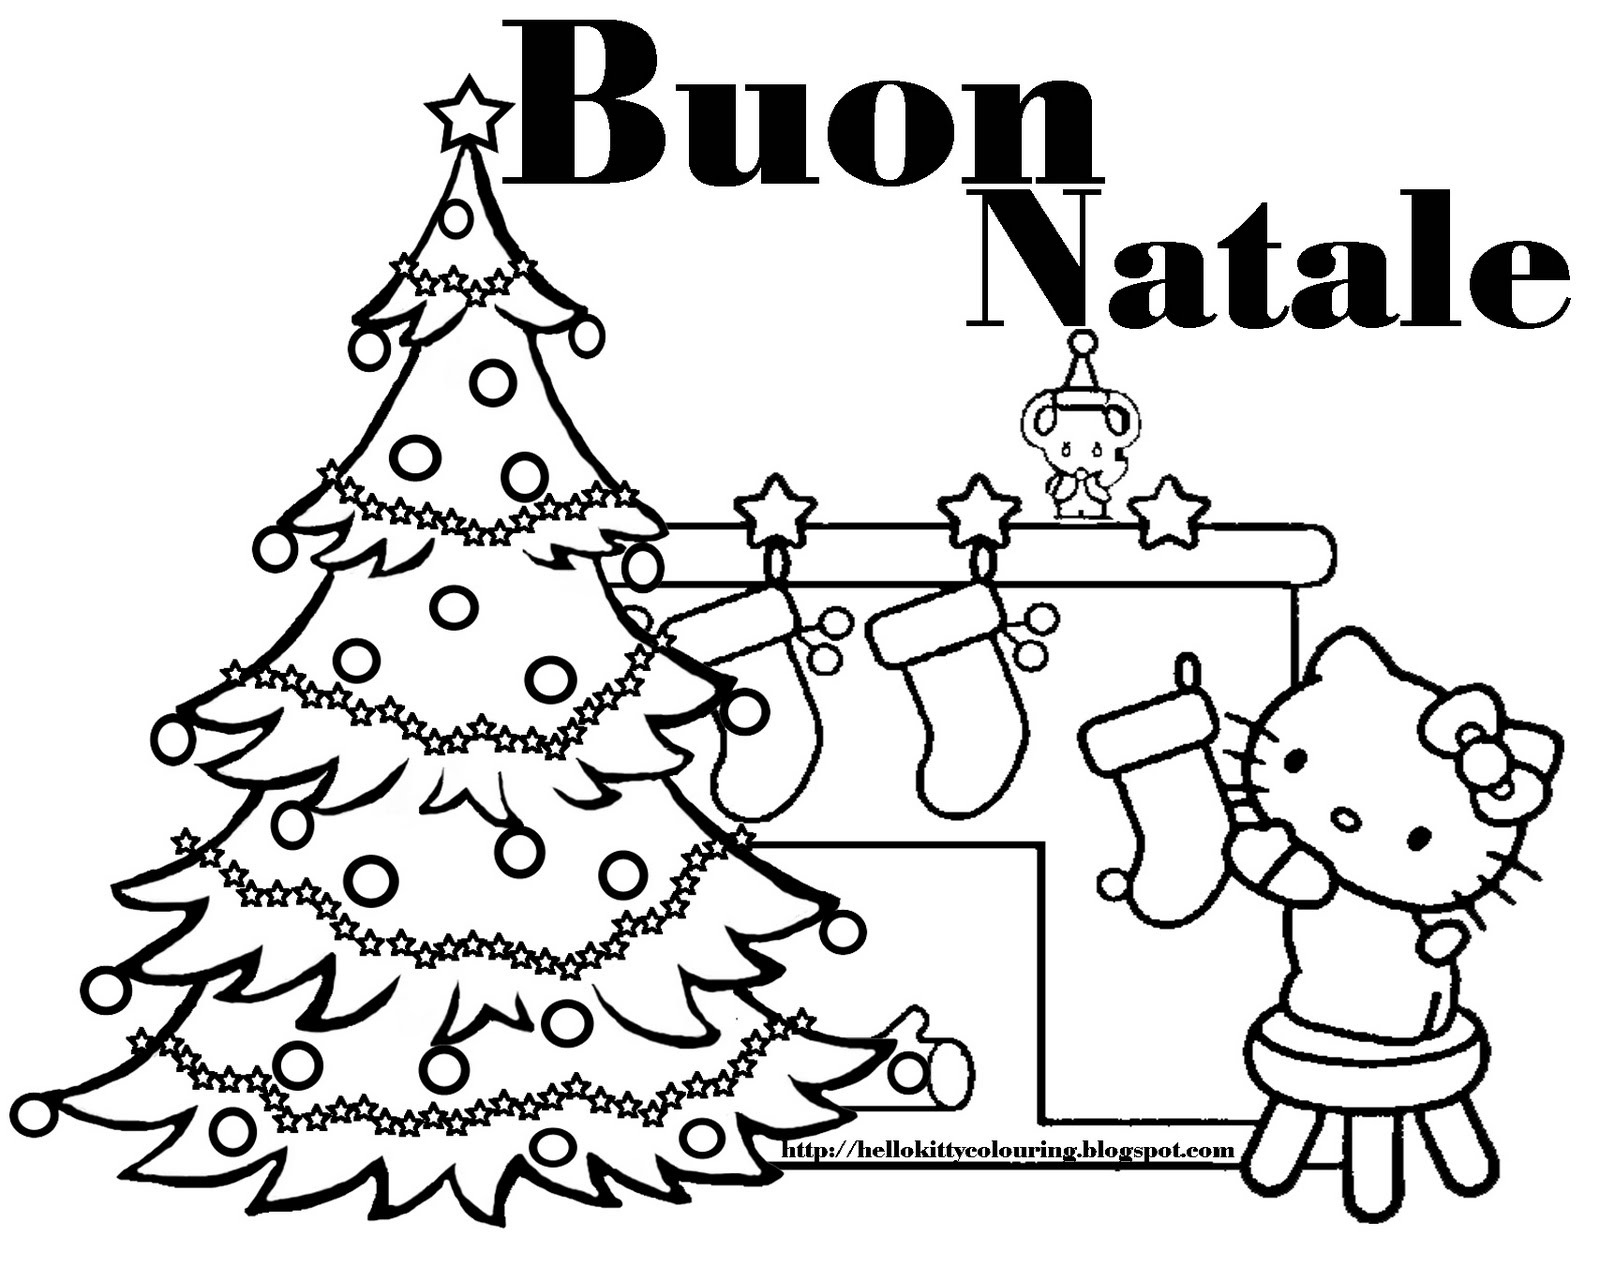 Hello Kitty Soccer Coloring Pages. HELLO KITTY CHRISTMAS COLORING XMAS PAGES